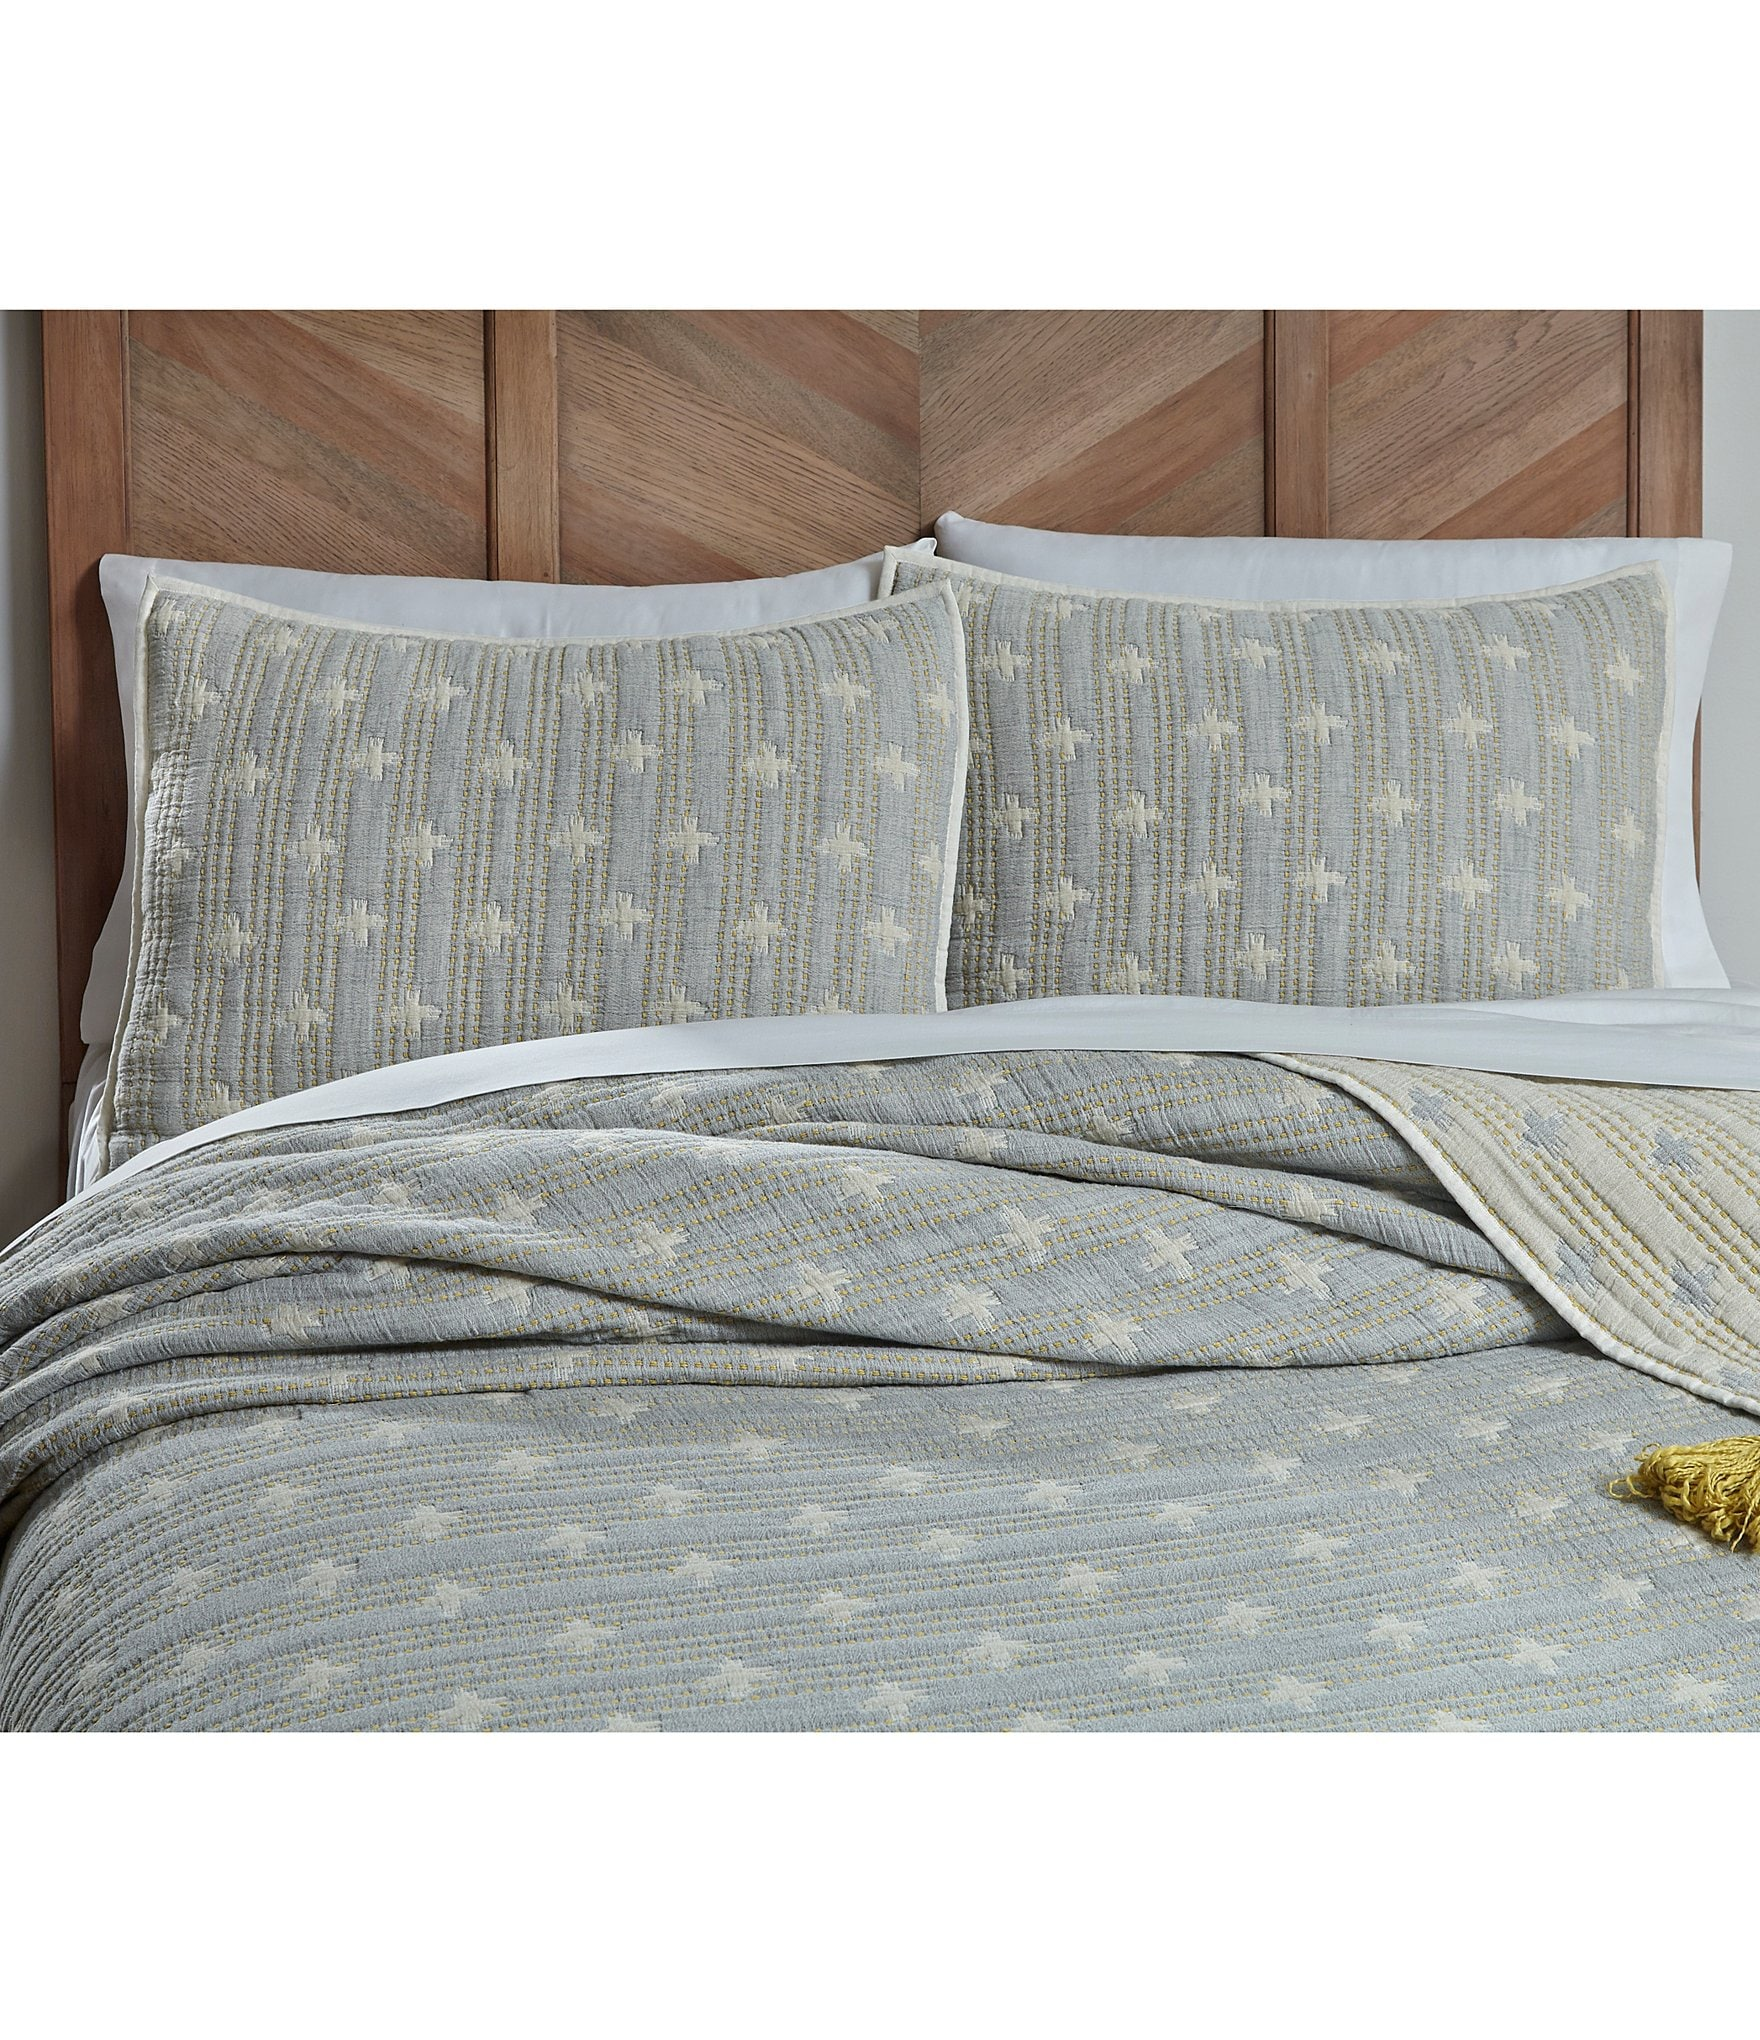 southern living simplicity collection knox matelasse coverlet dillard s